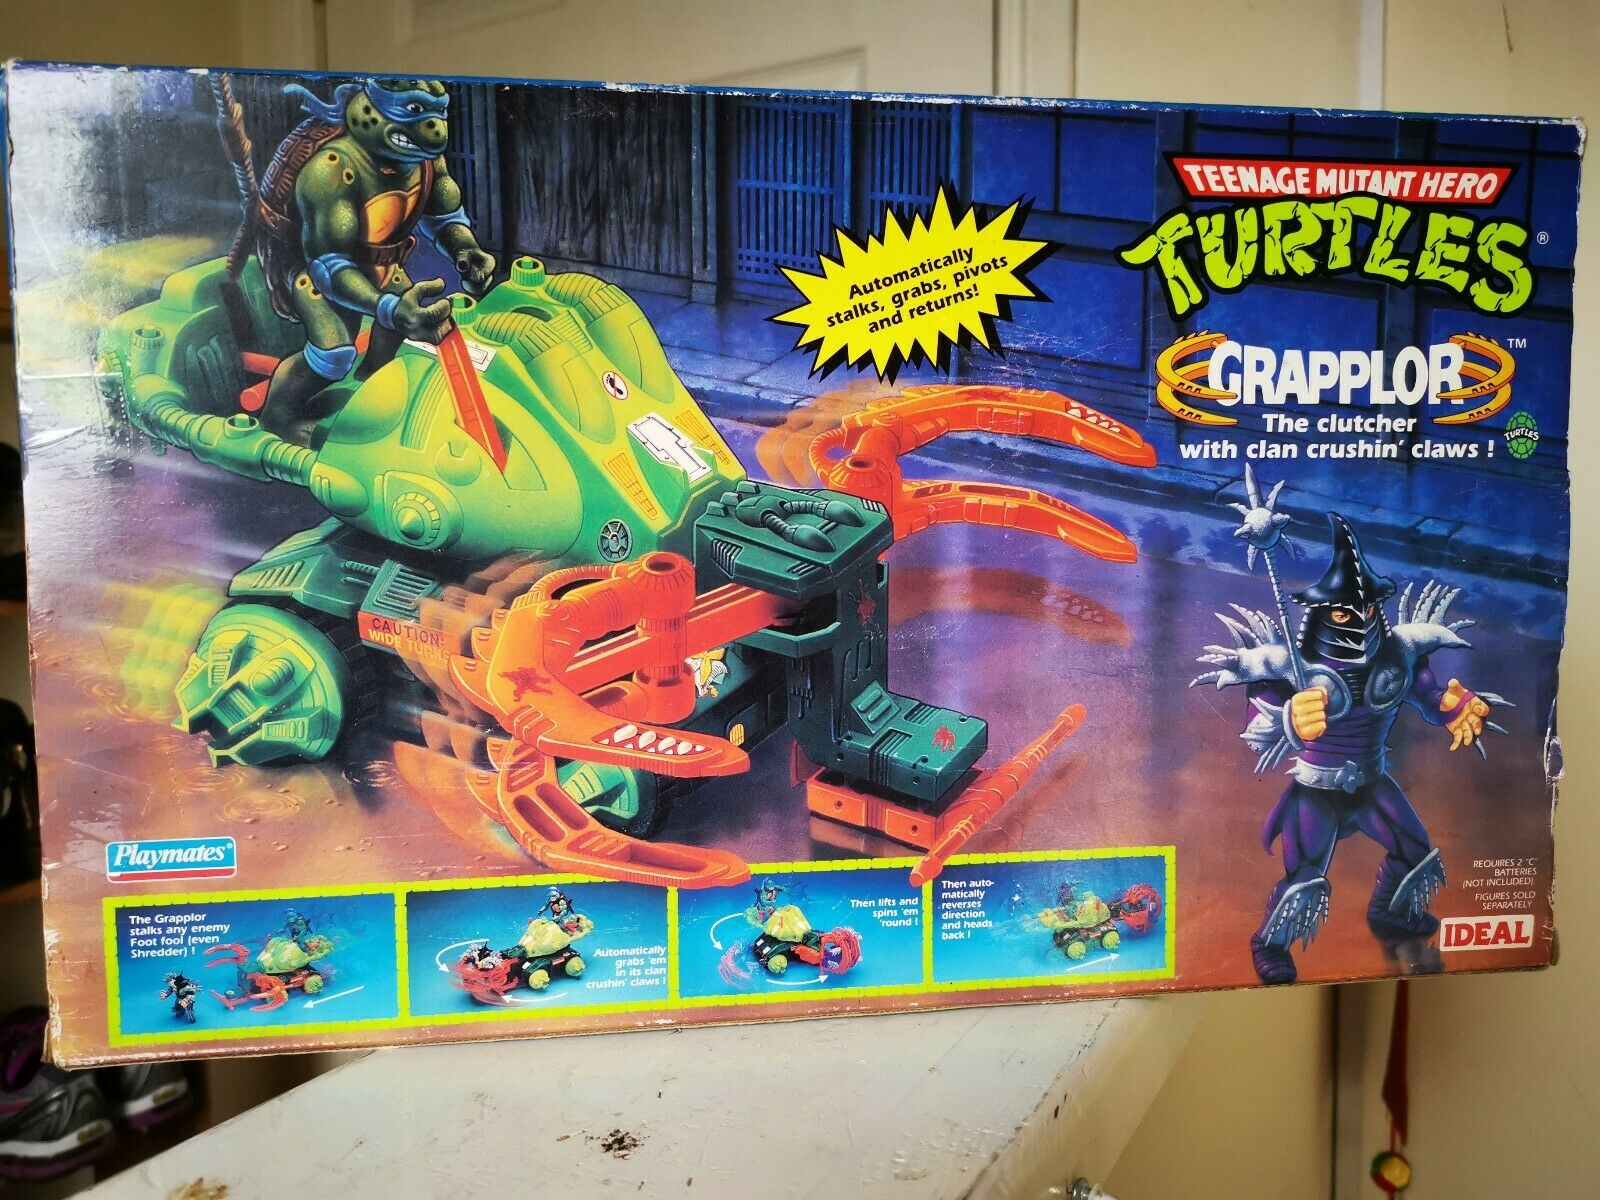 1989 GRAPPLOR TMNT TEENAGE MUTANT HERO TURTLES NINJA Playmates BNISB  Nuovo  buona reputazione